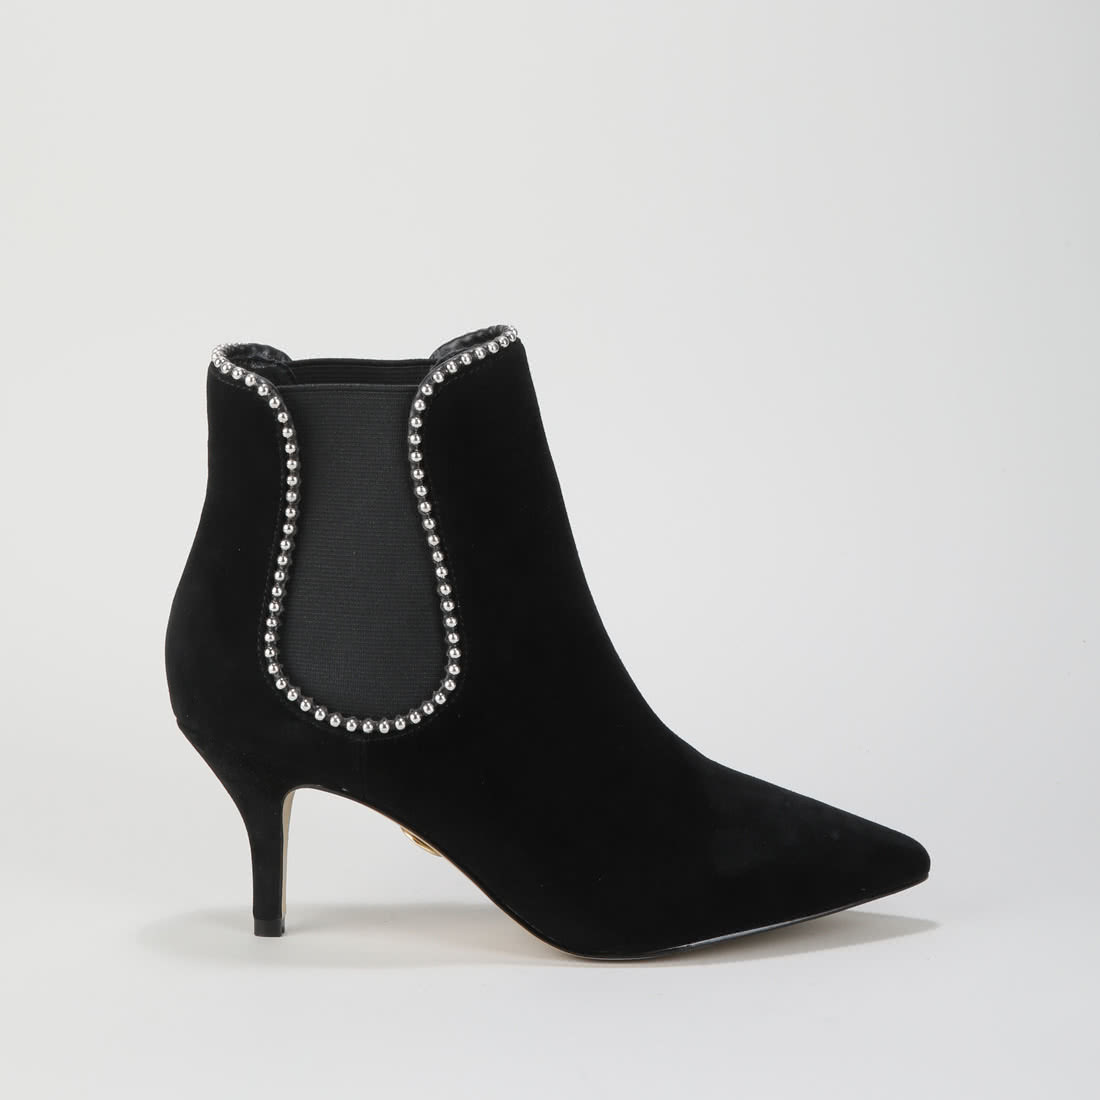 23dd81c8a4499 Mirage Ankle Boot suede black buy online in BUFFALO Online-Shop ...